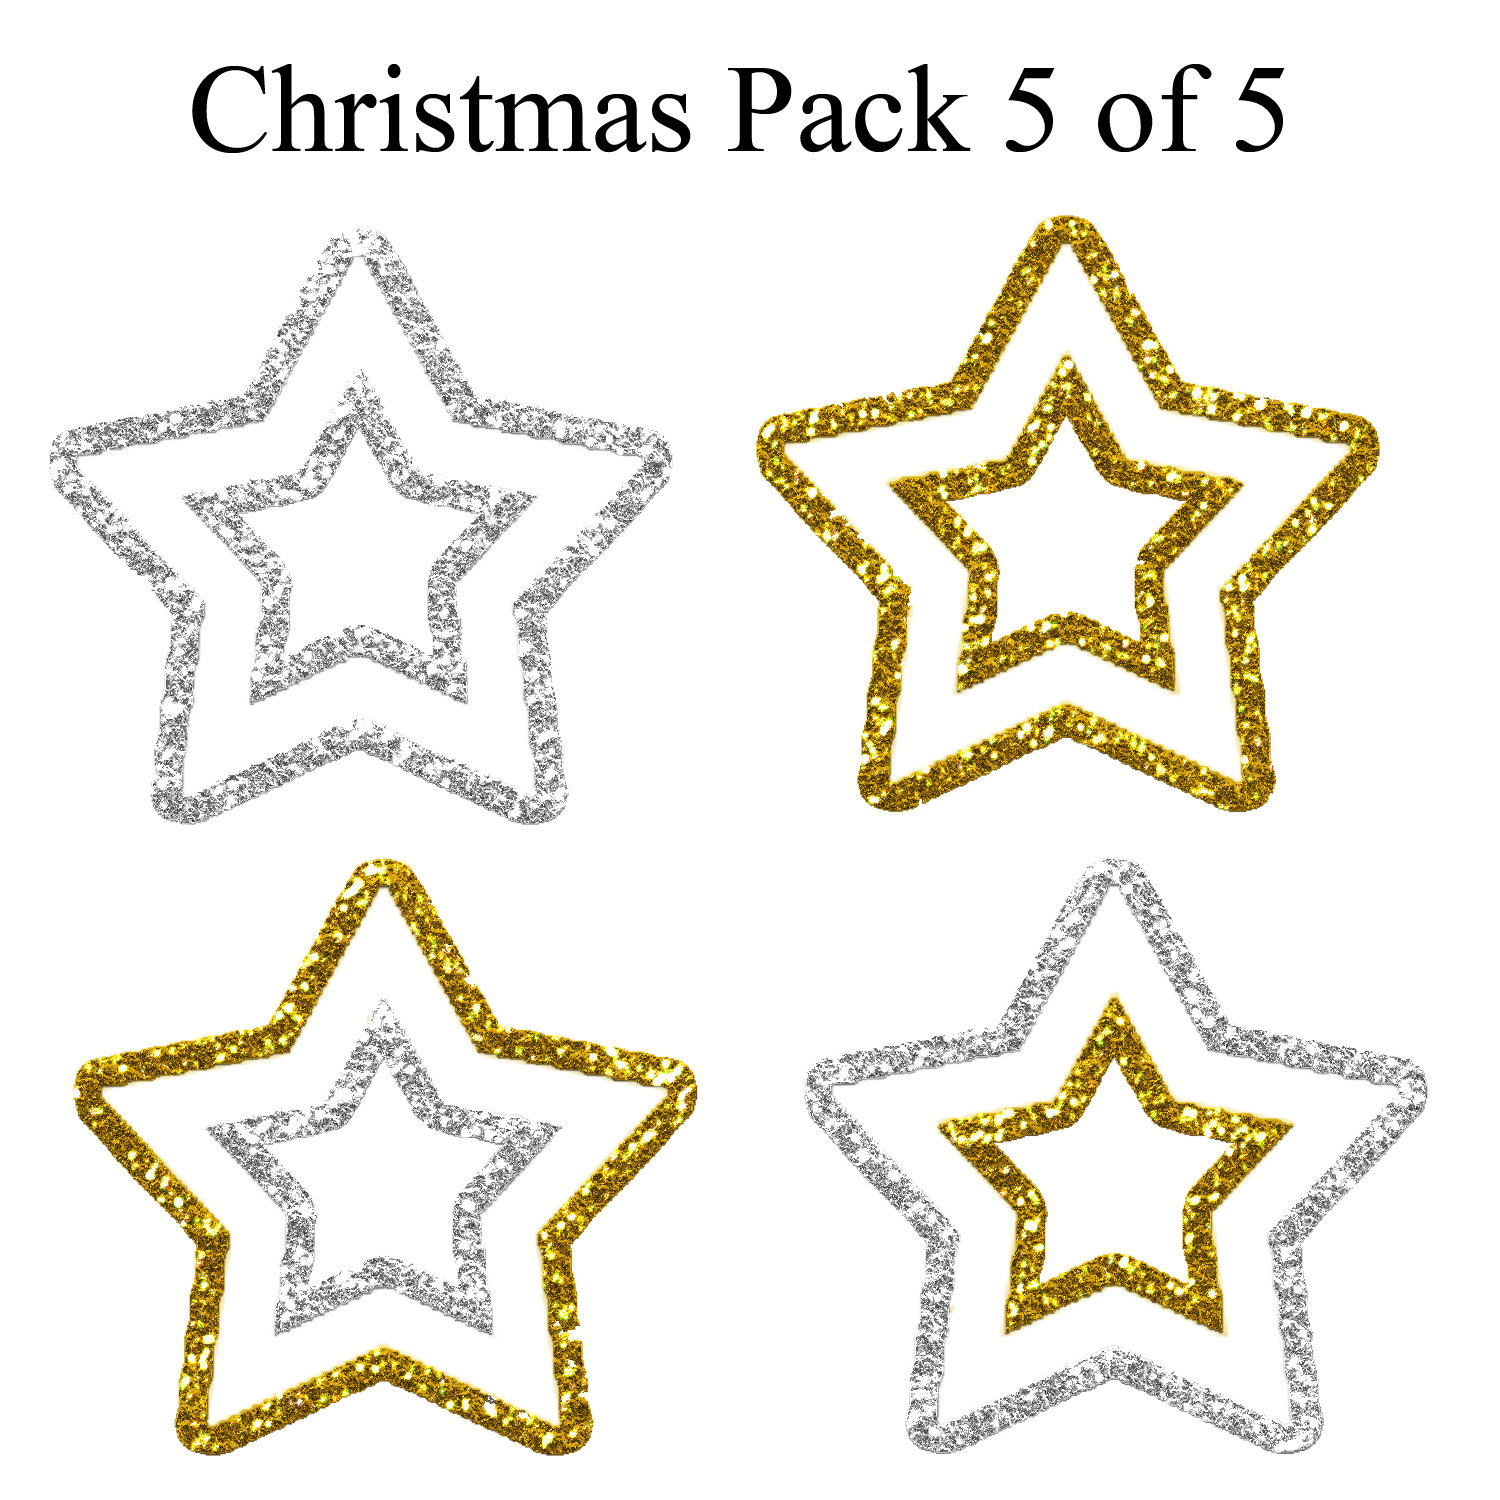 christmas_pack_5_of_5___stars2_by_hermit_stock